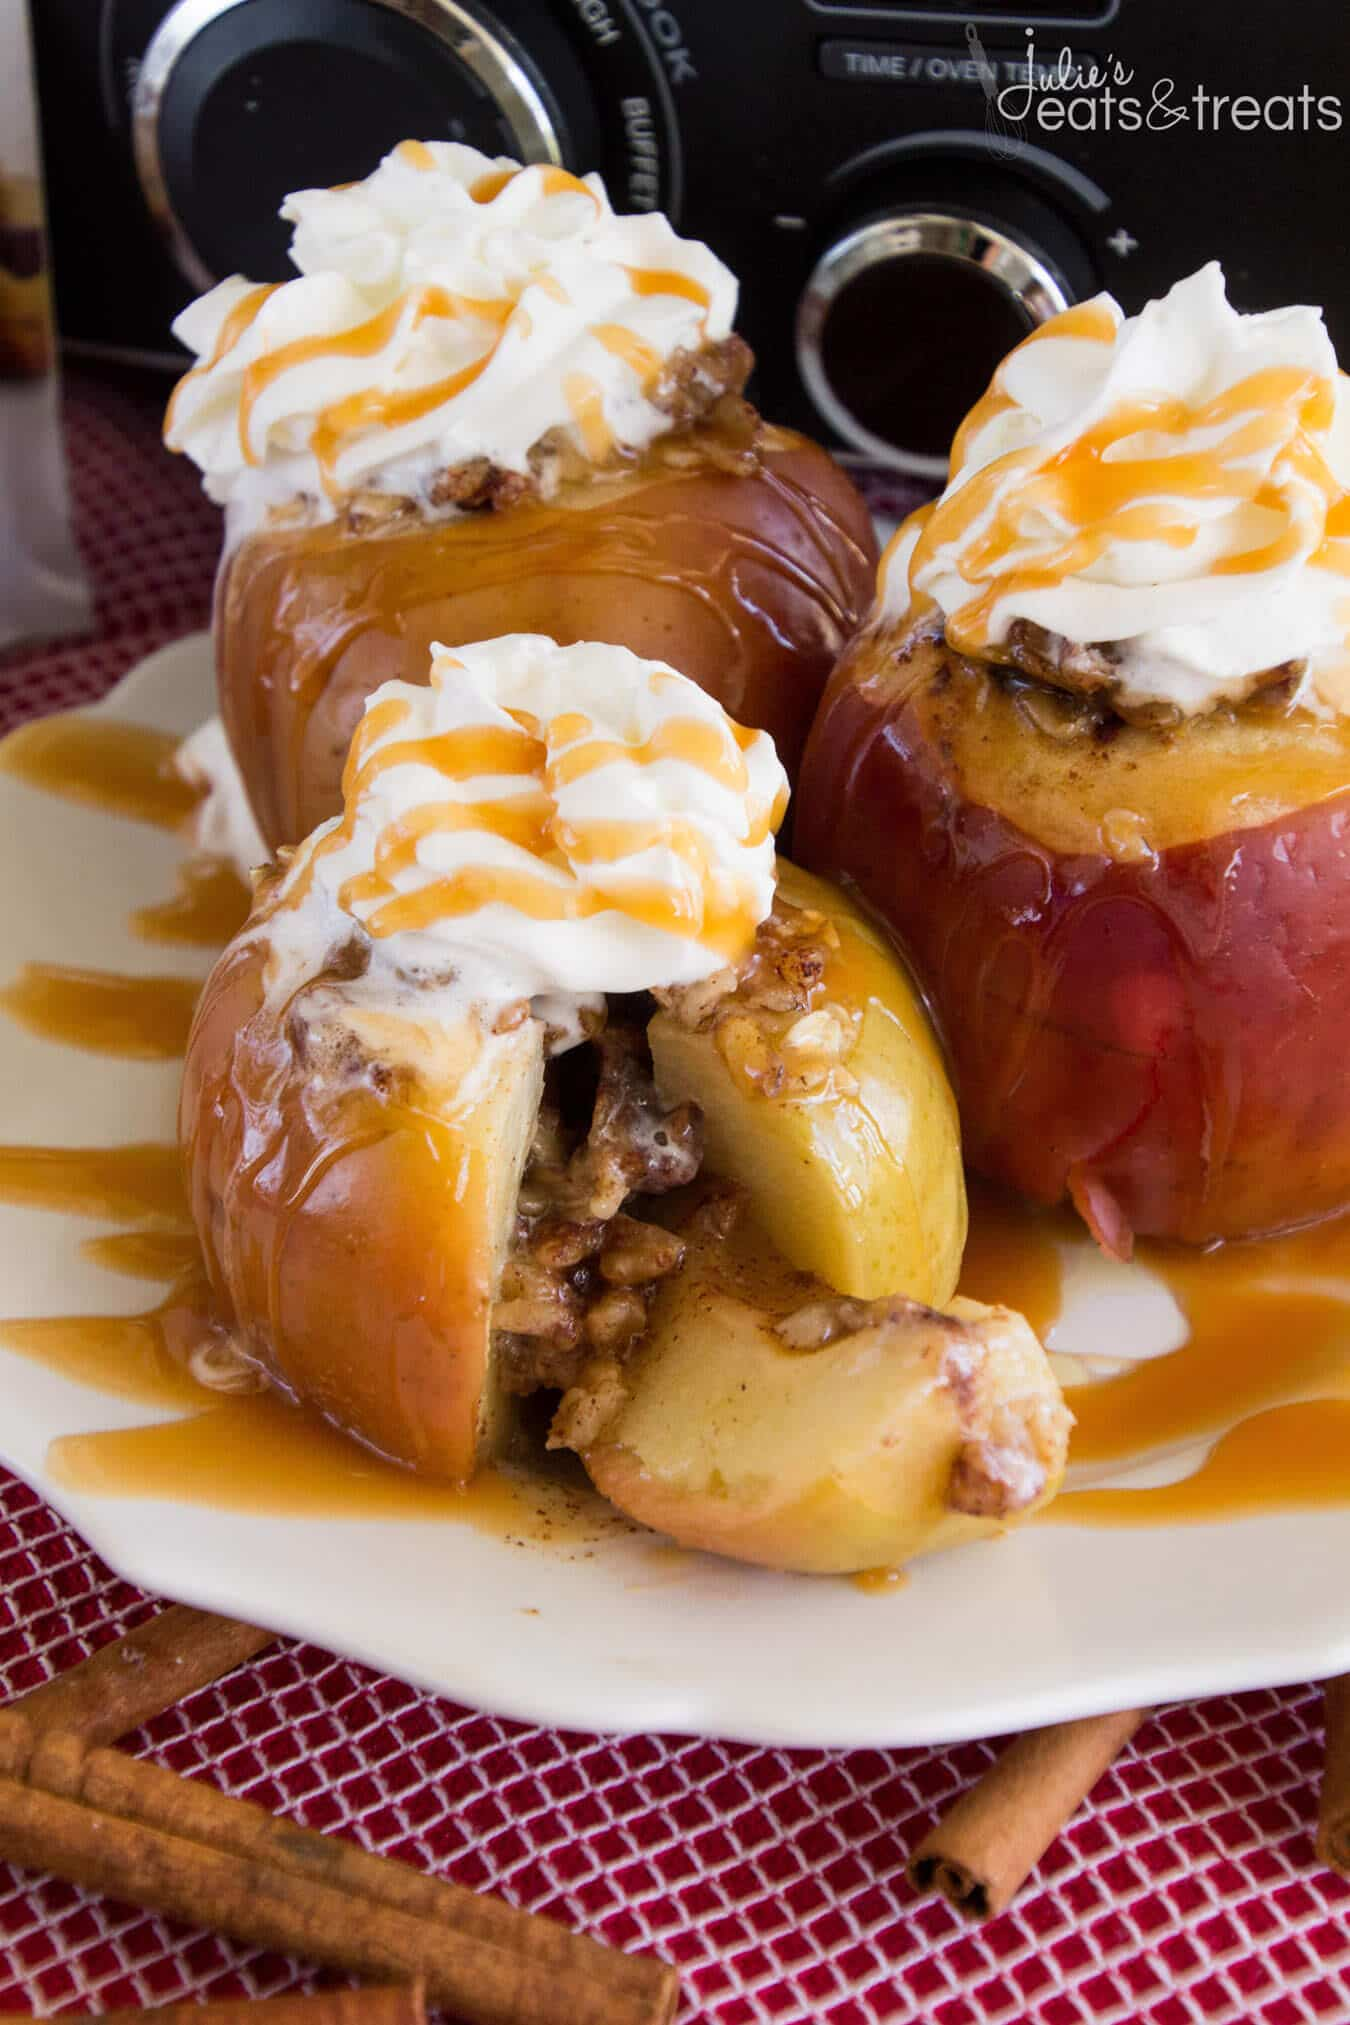 Light Crock Pot Baked Apples Recipe ~ Delicious, Apples Stuffed with Oatmeal, Brown Sugar and Walnuts then Baked to Perfection in the Slow Cooker! Then Drizzle them with Caramel!